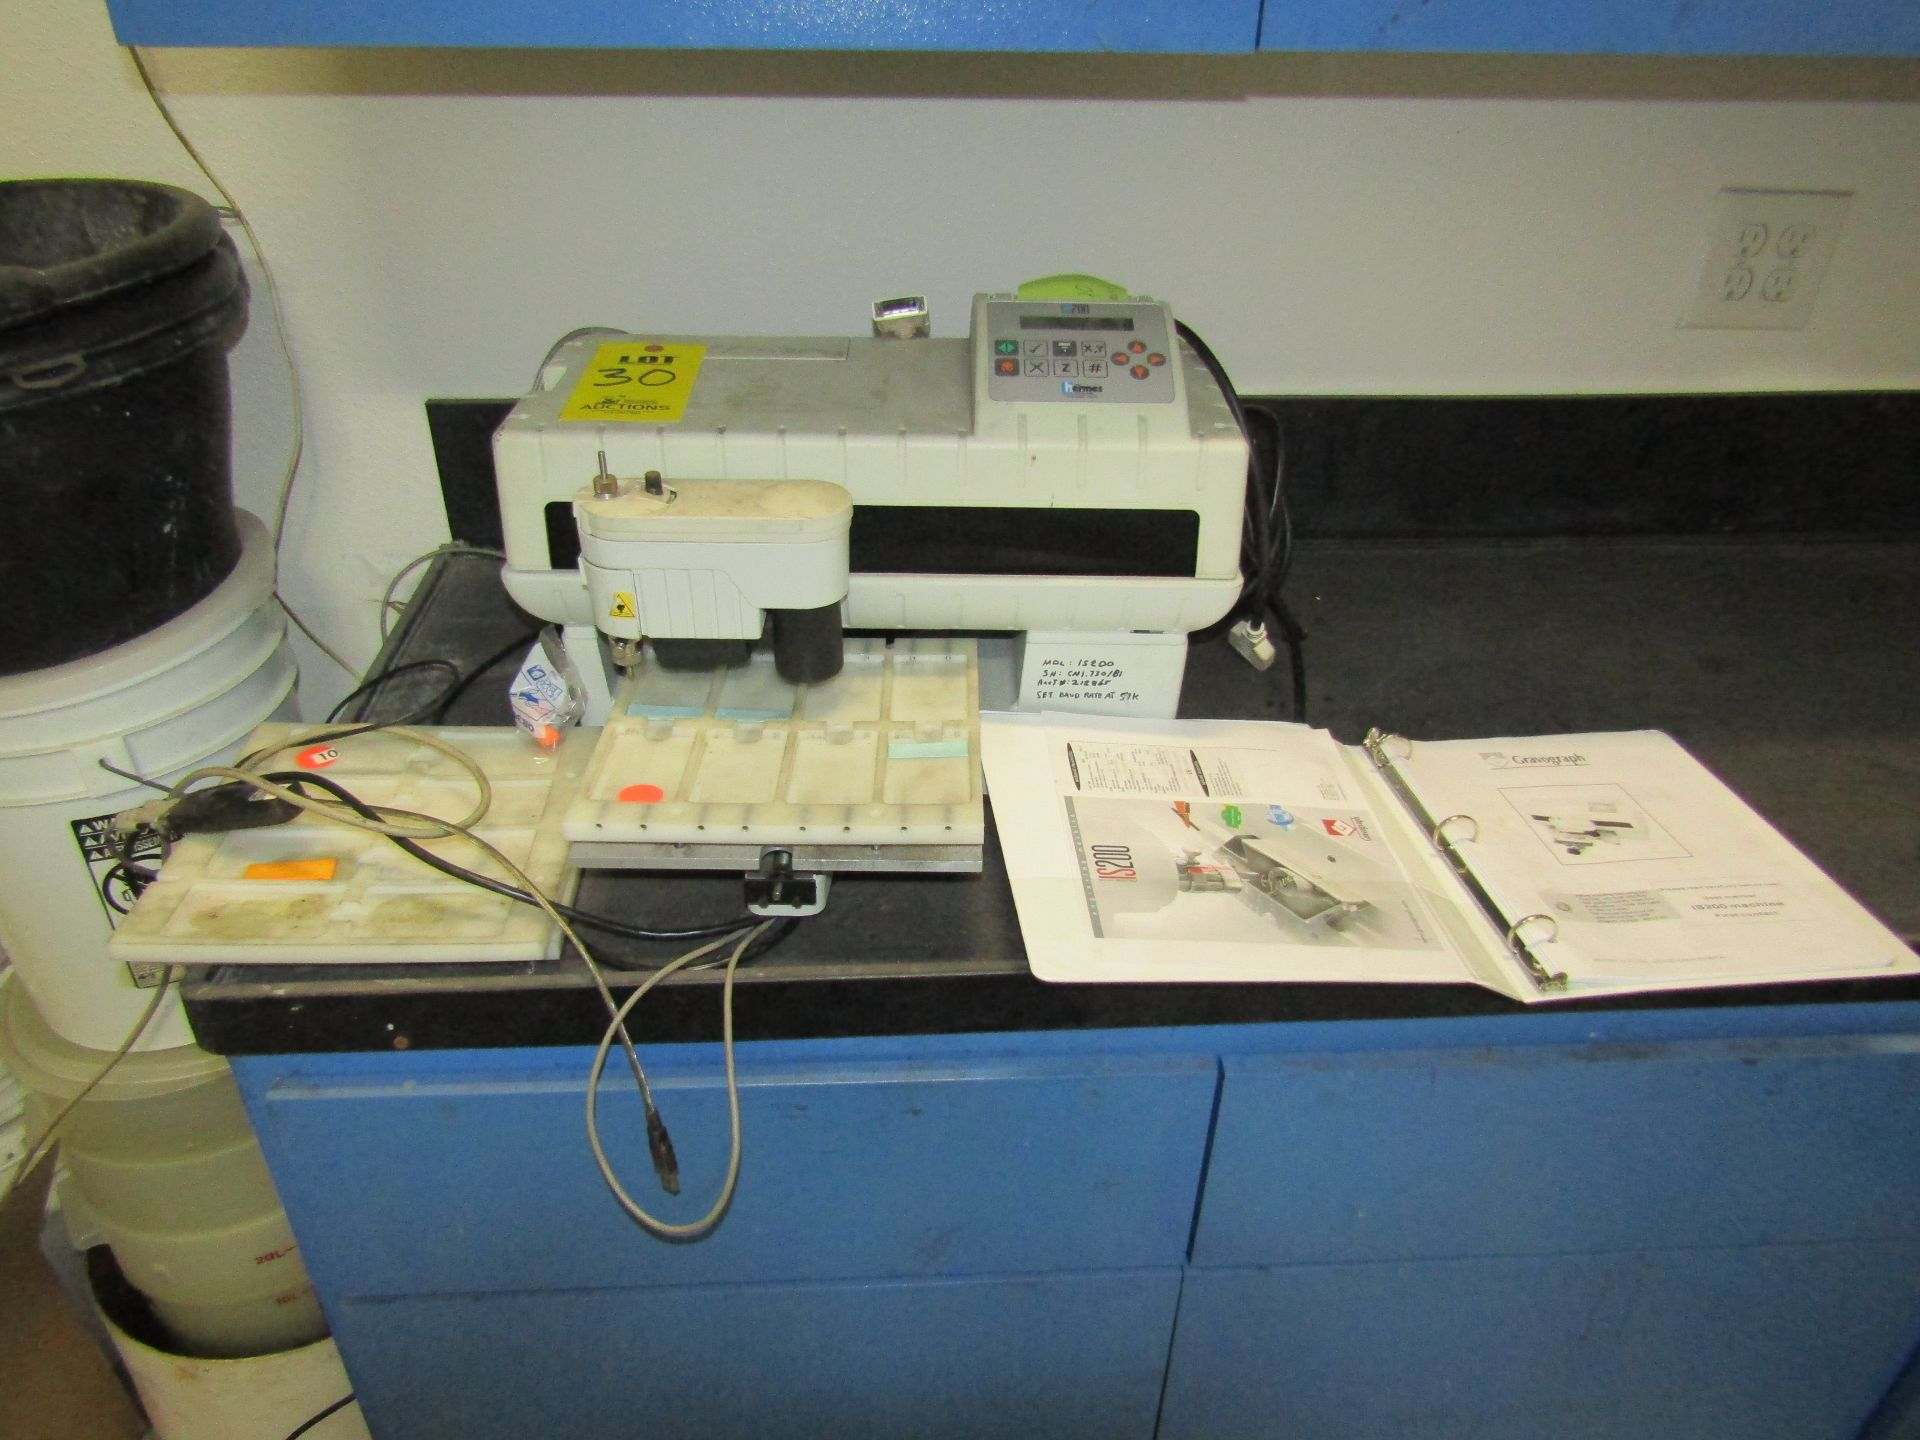 Lot 30 - HERMES IS200 Gravograph Engraving Machine, S/N CNI.730/81, With Operating Manual